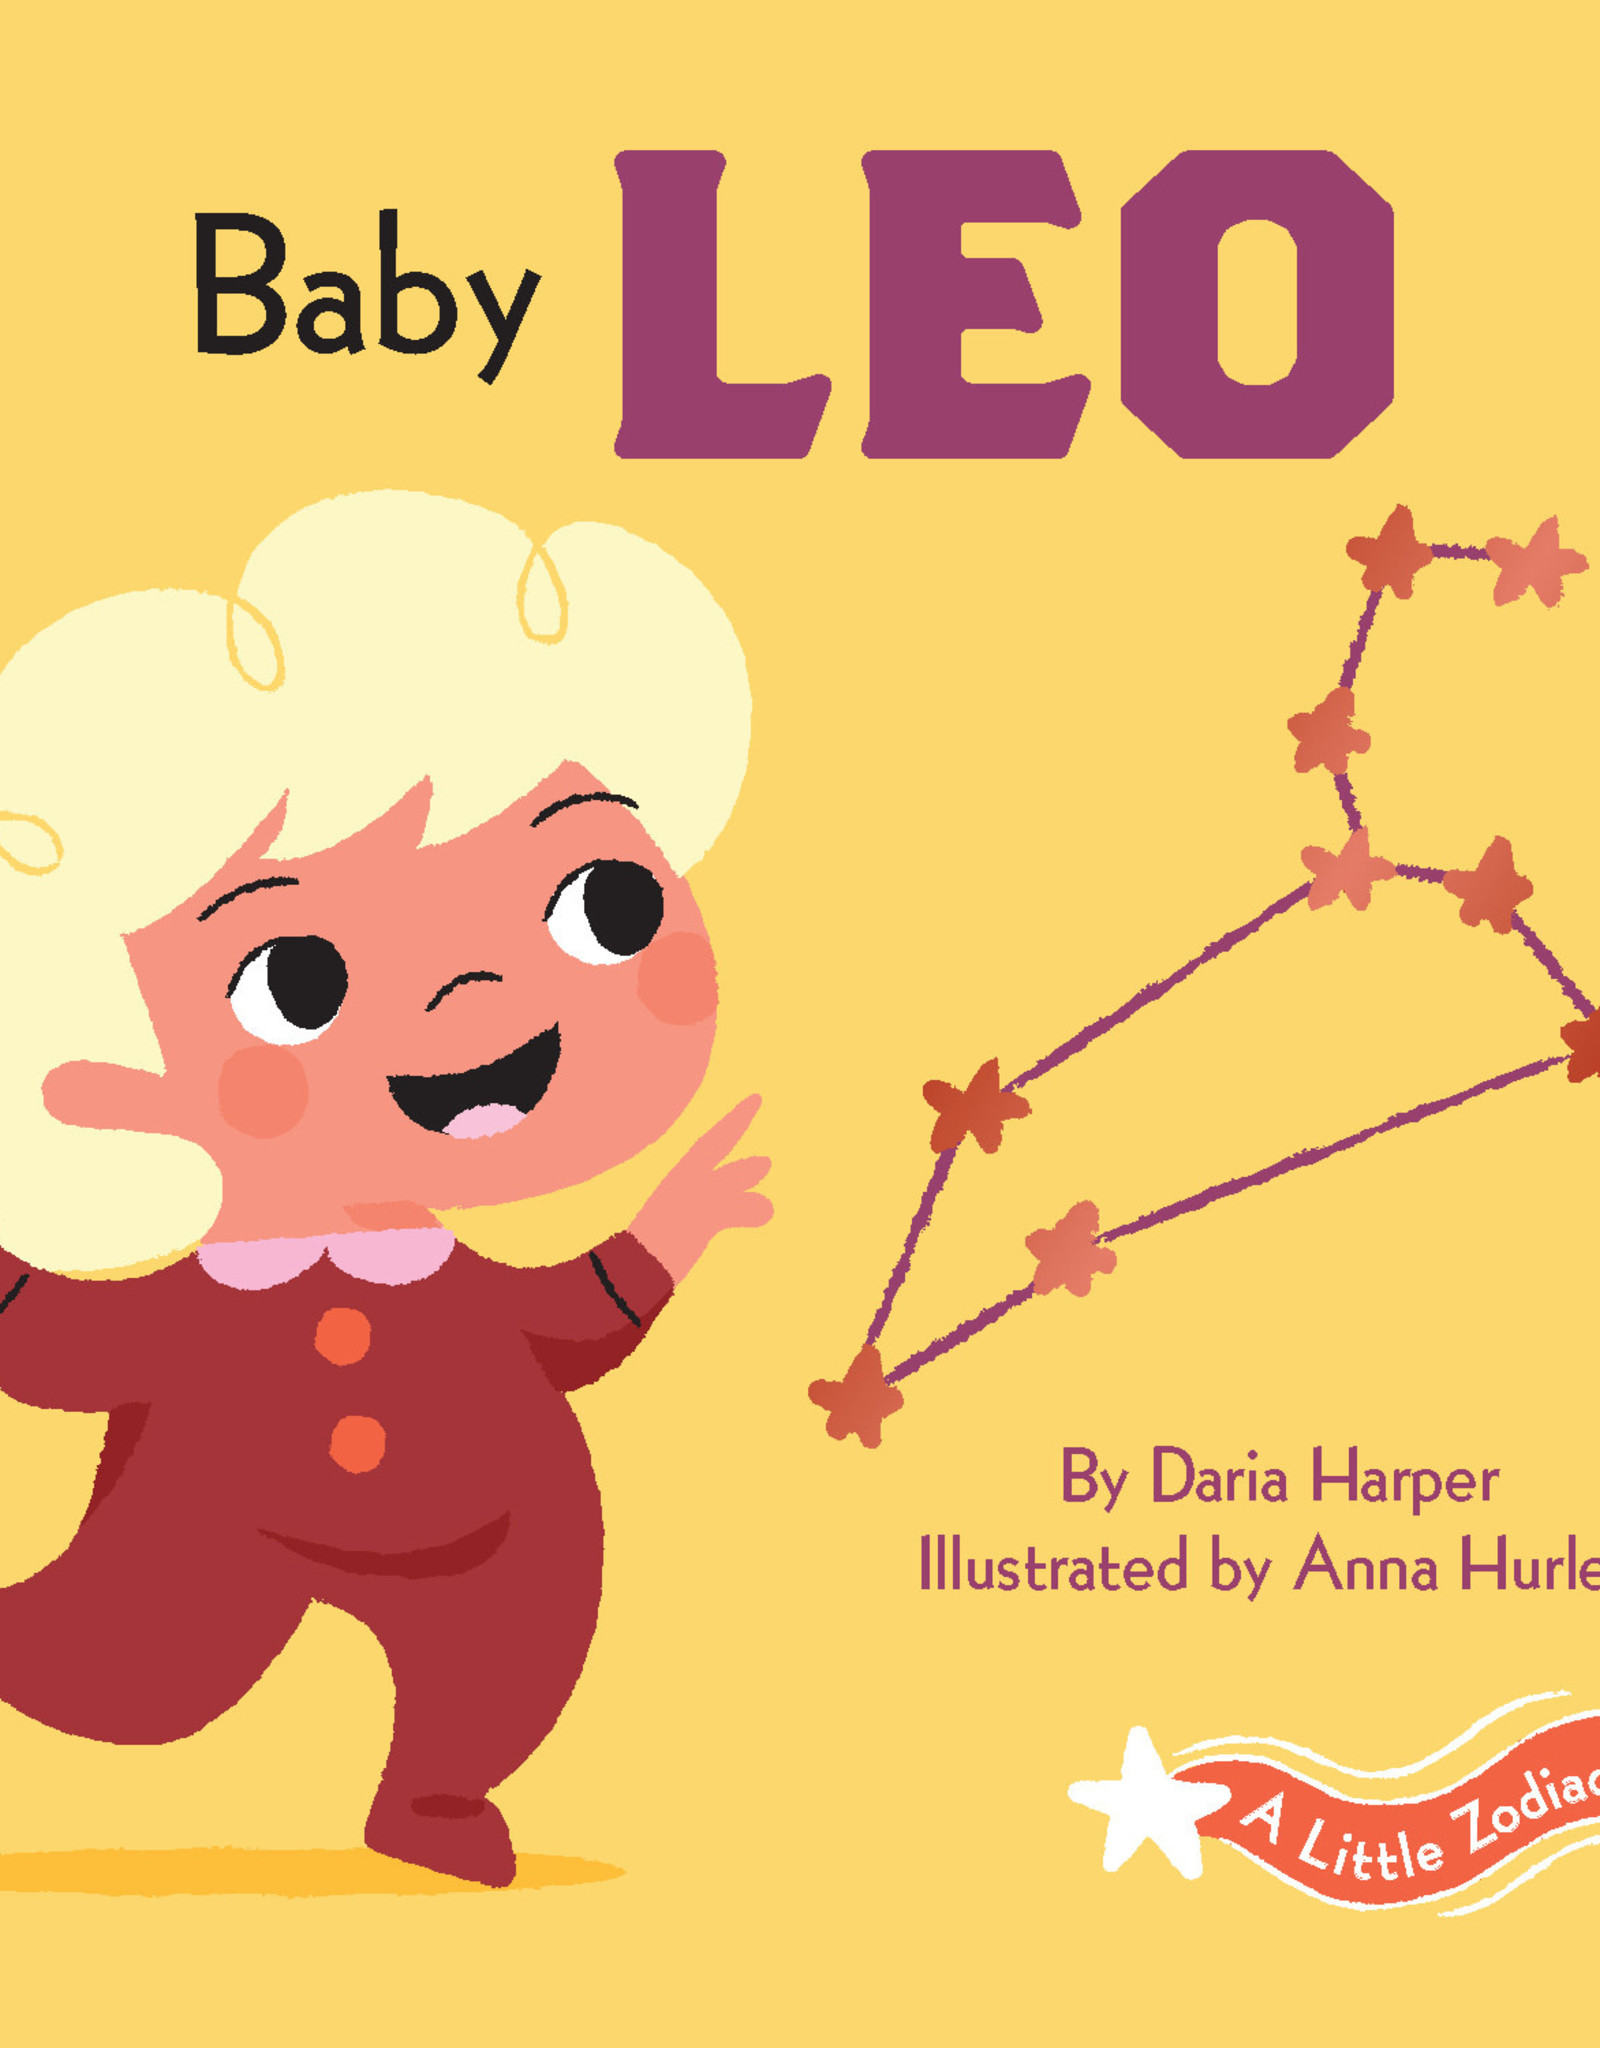 Chronicle Books A Little Zodiac Book: Baby Leo